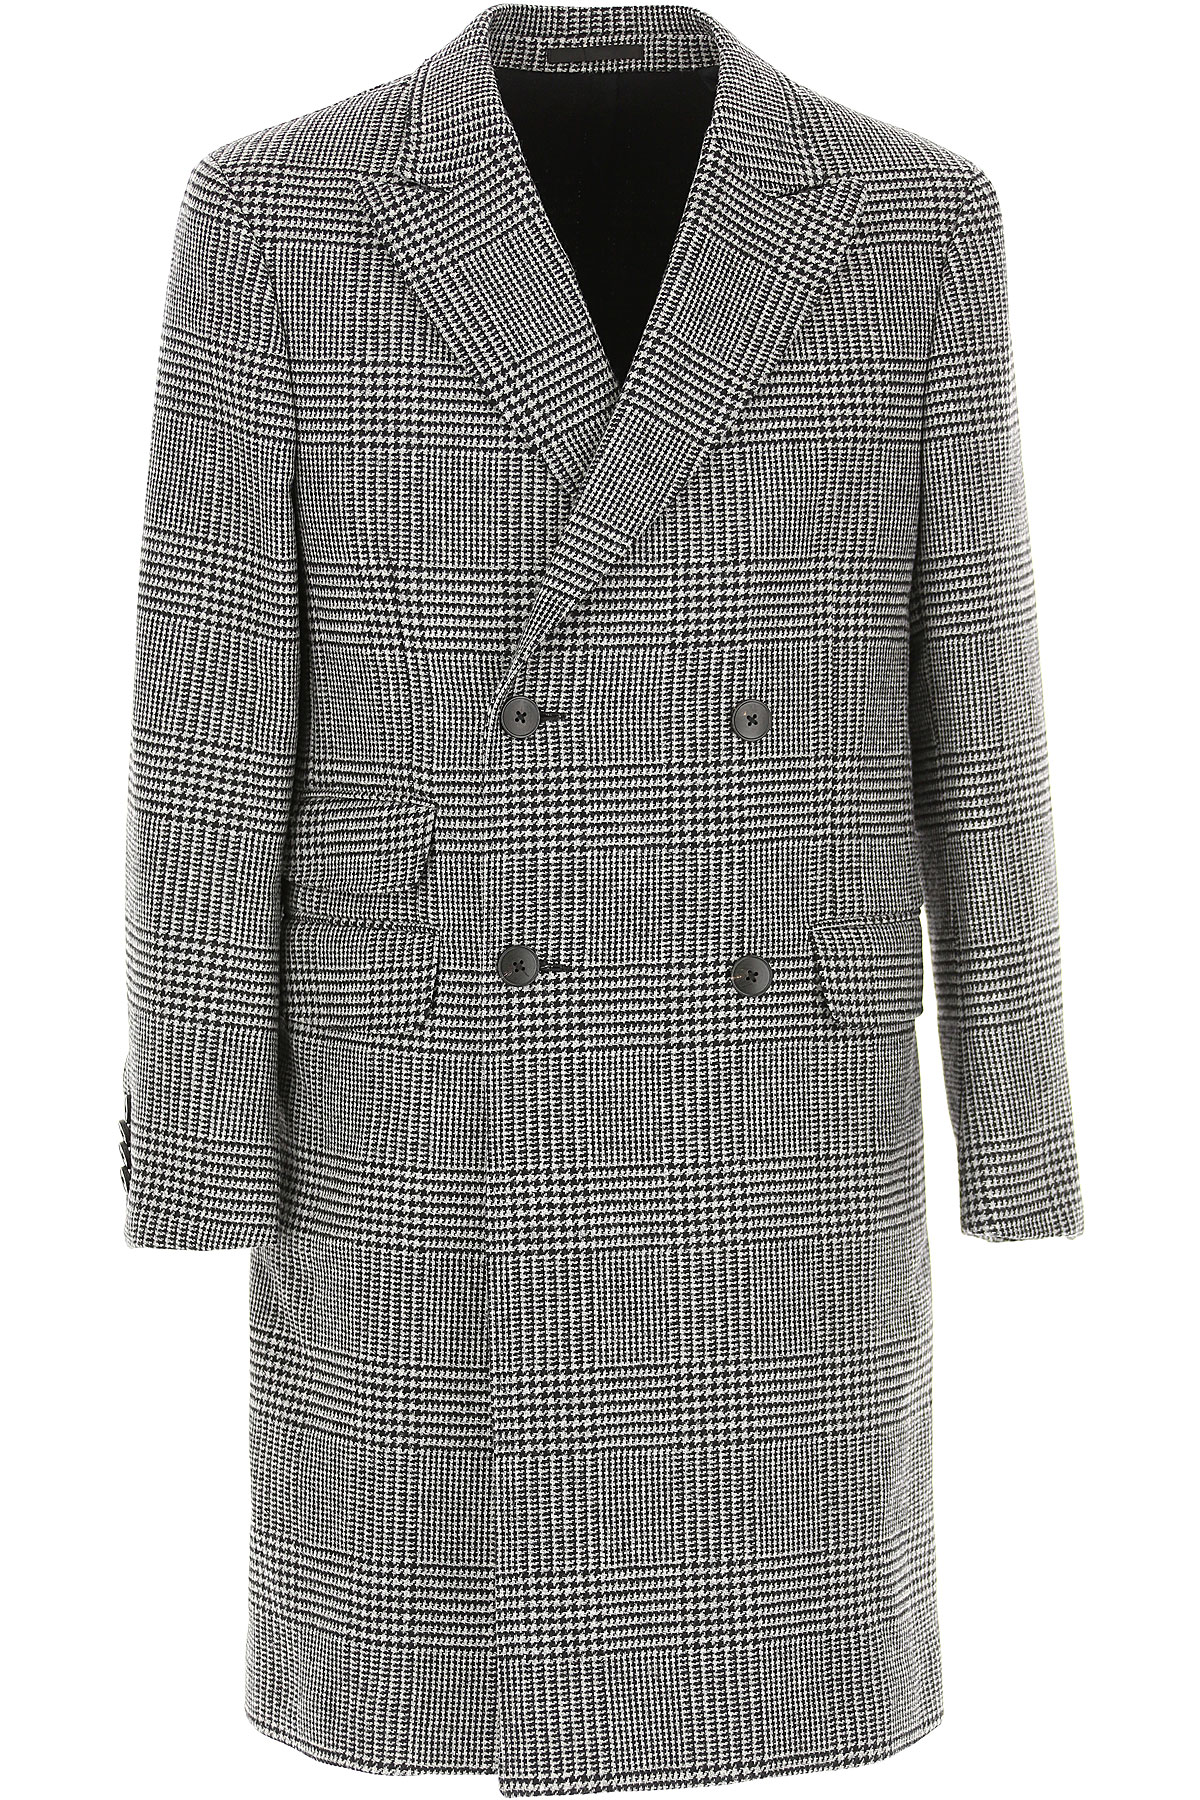 Ermenegildo Zegna Men's Coat, Grey, Wool, 2019, L XL